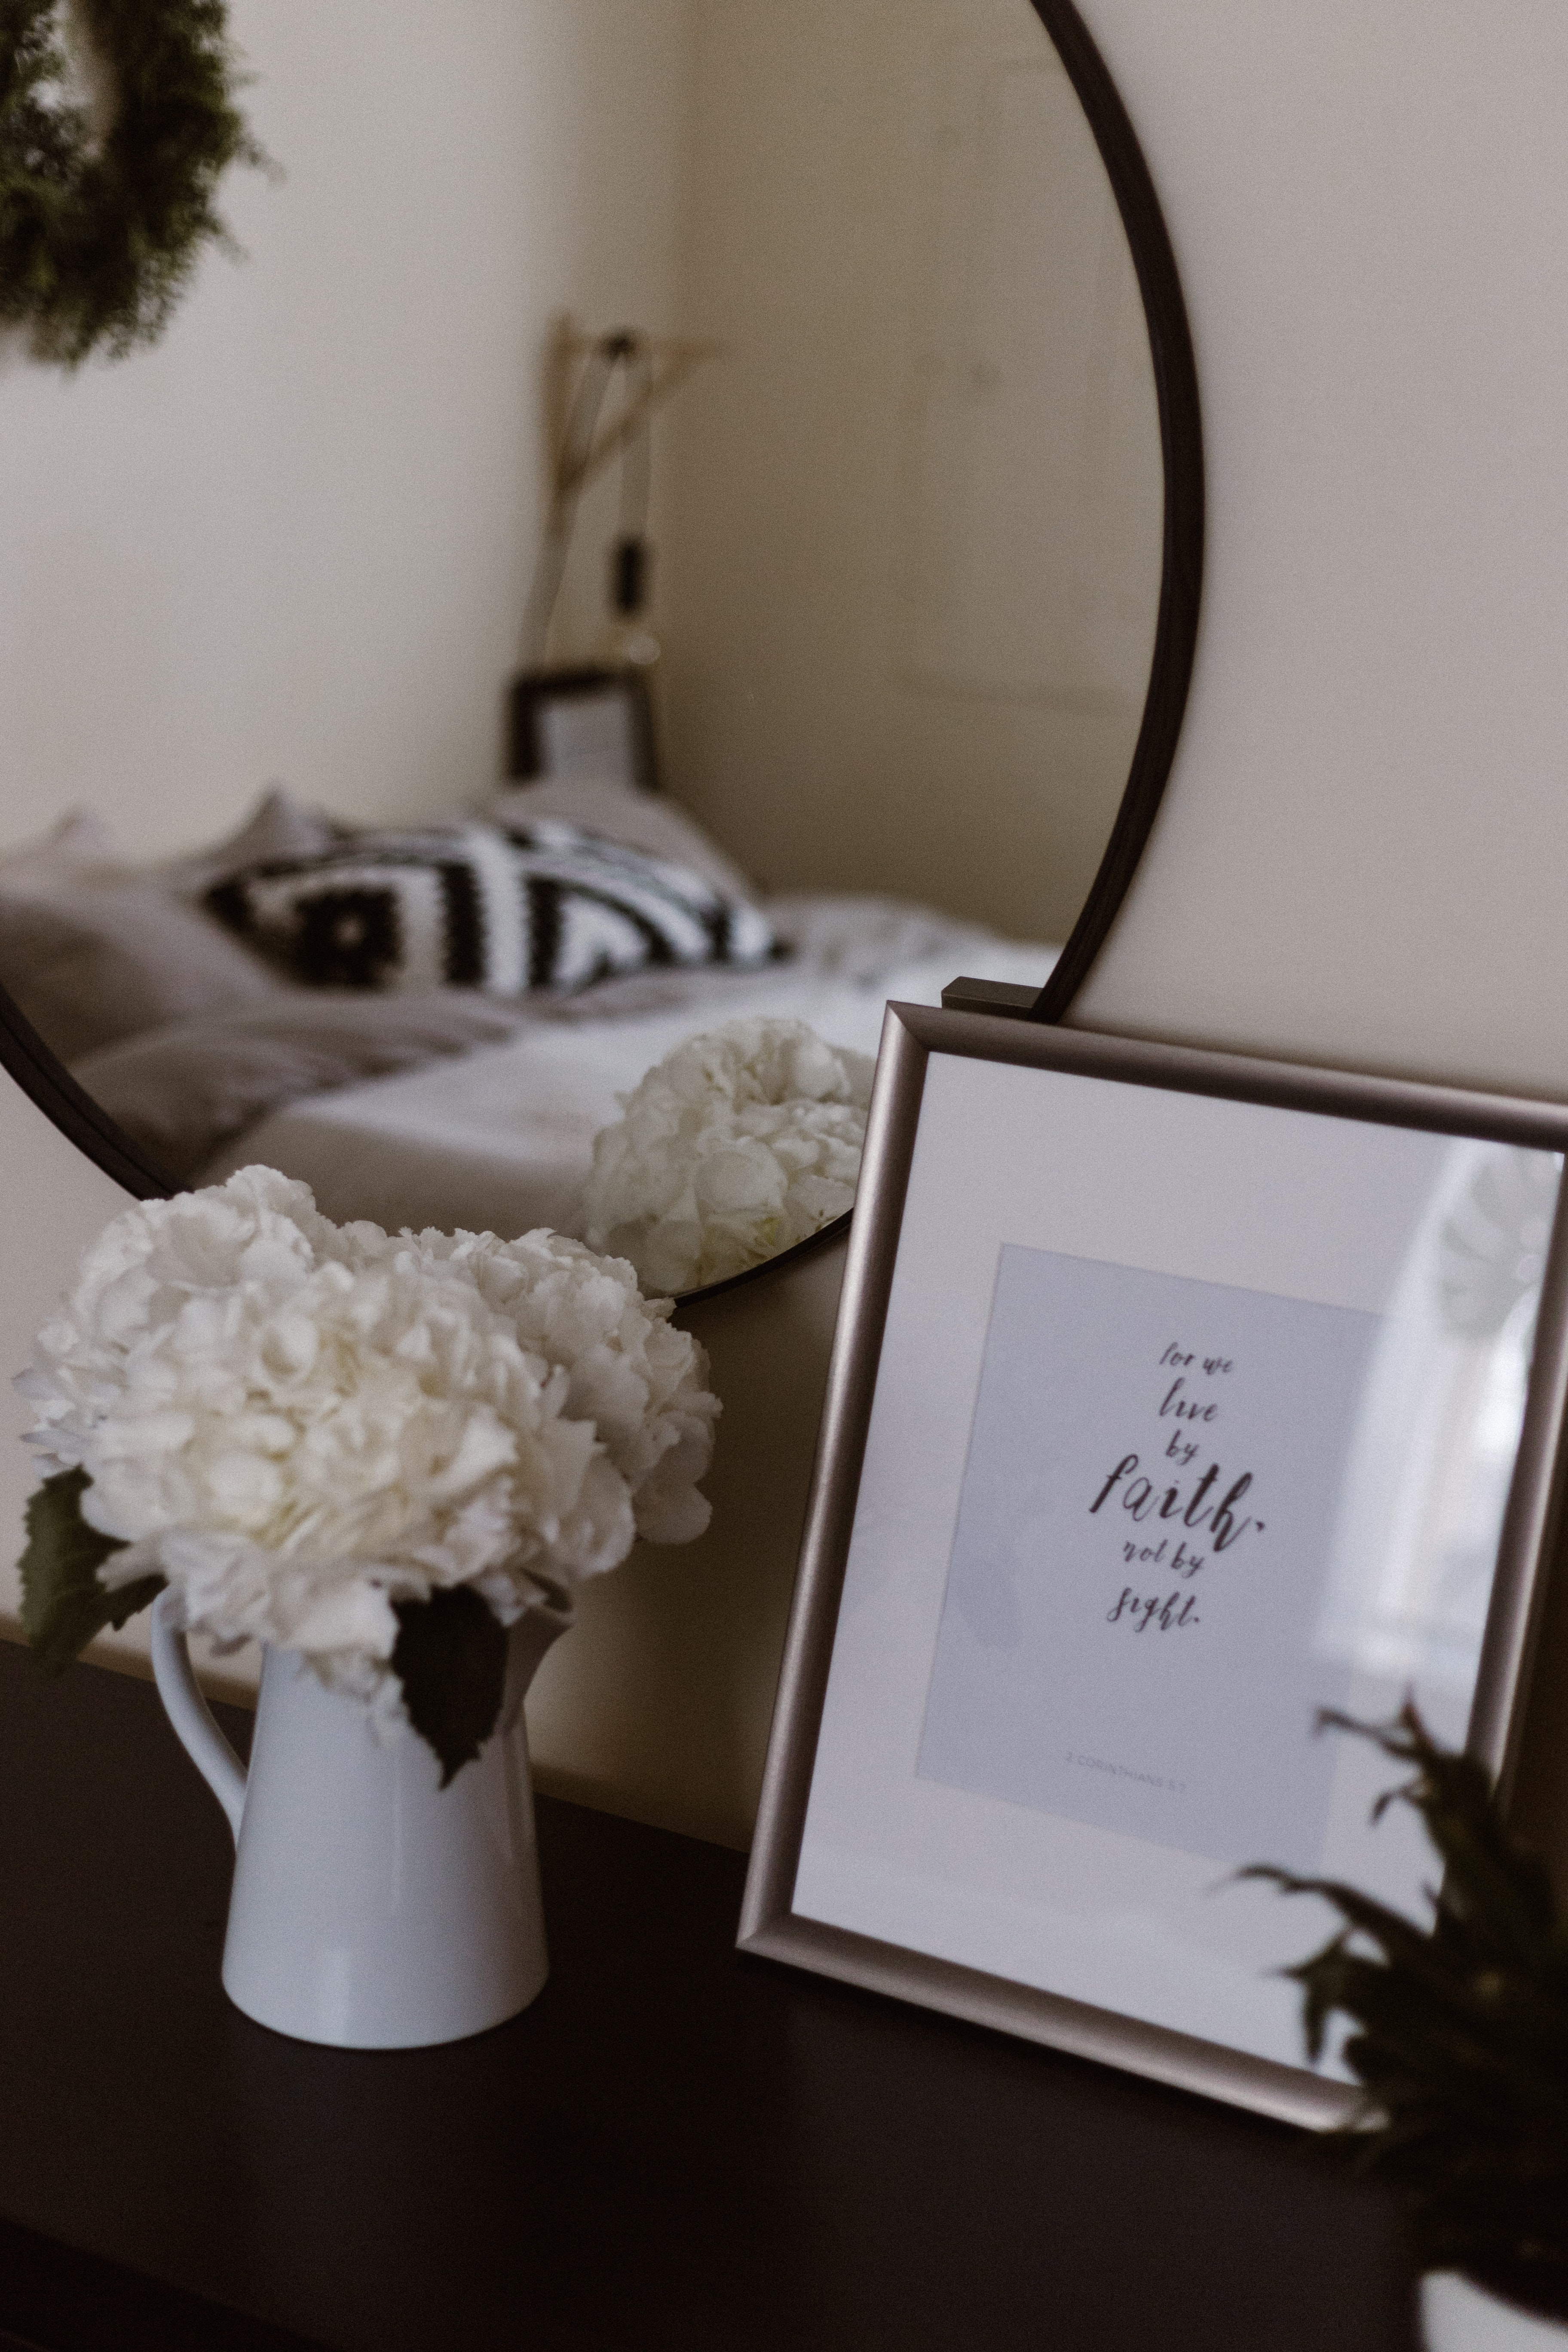 white potted flowers beside photo frame